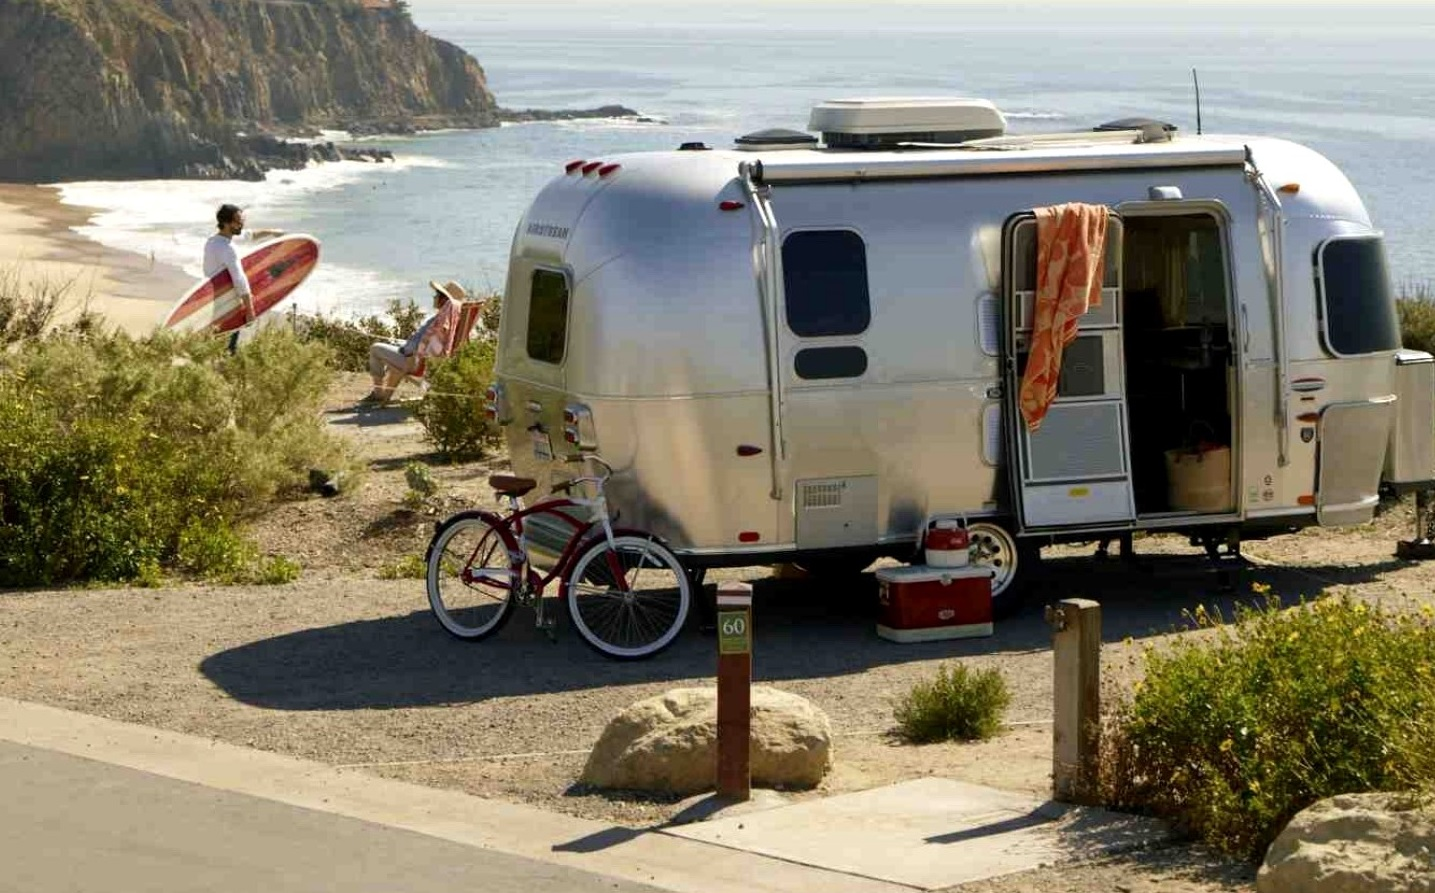 Reasons to go Glamping in Campervans and Airstreams